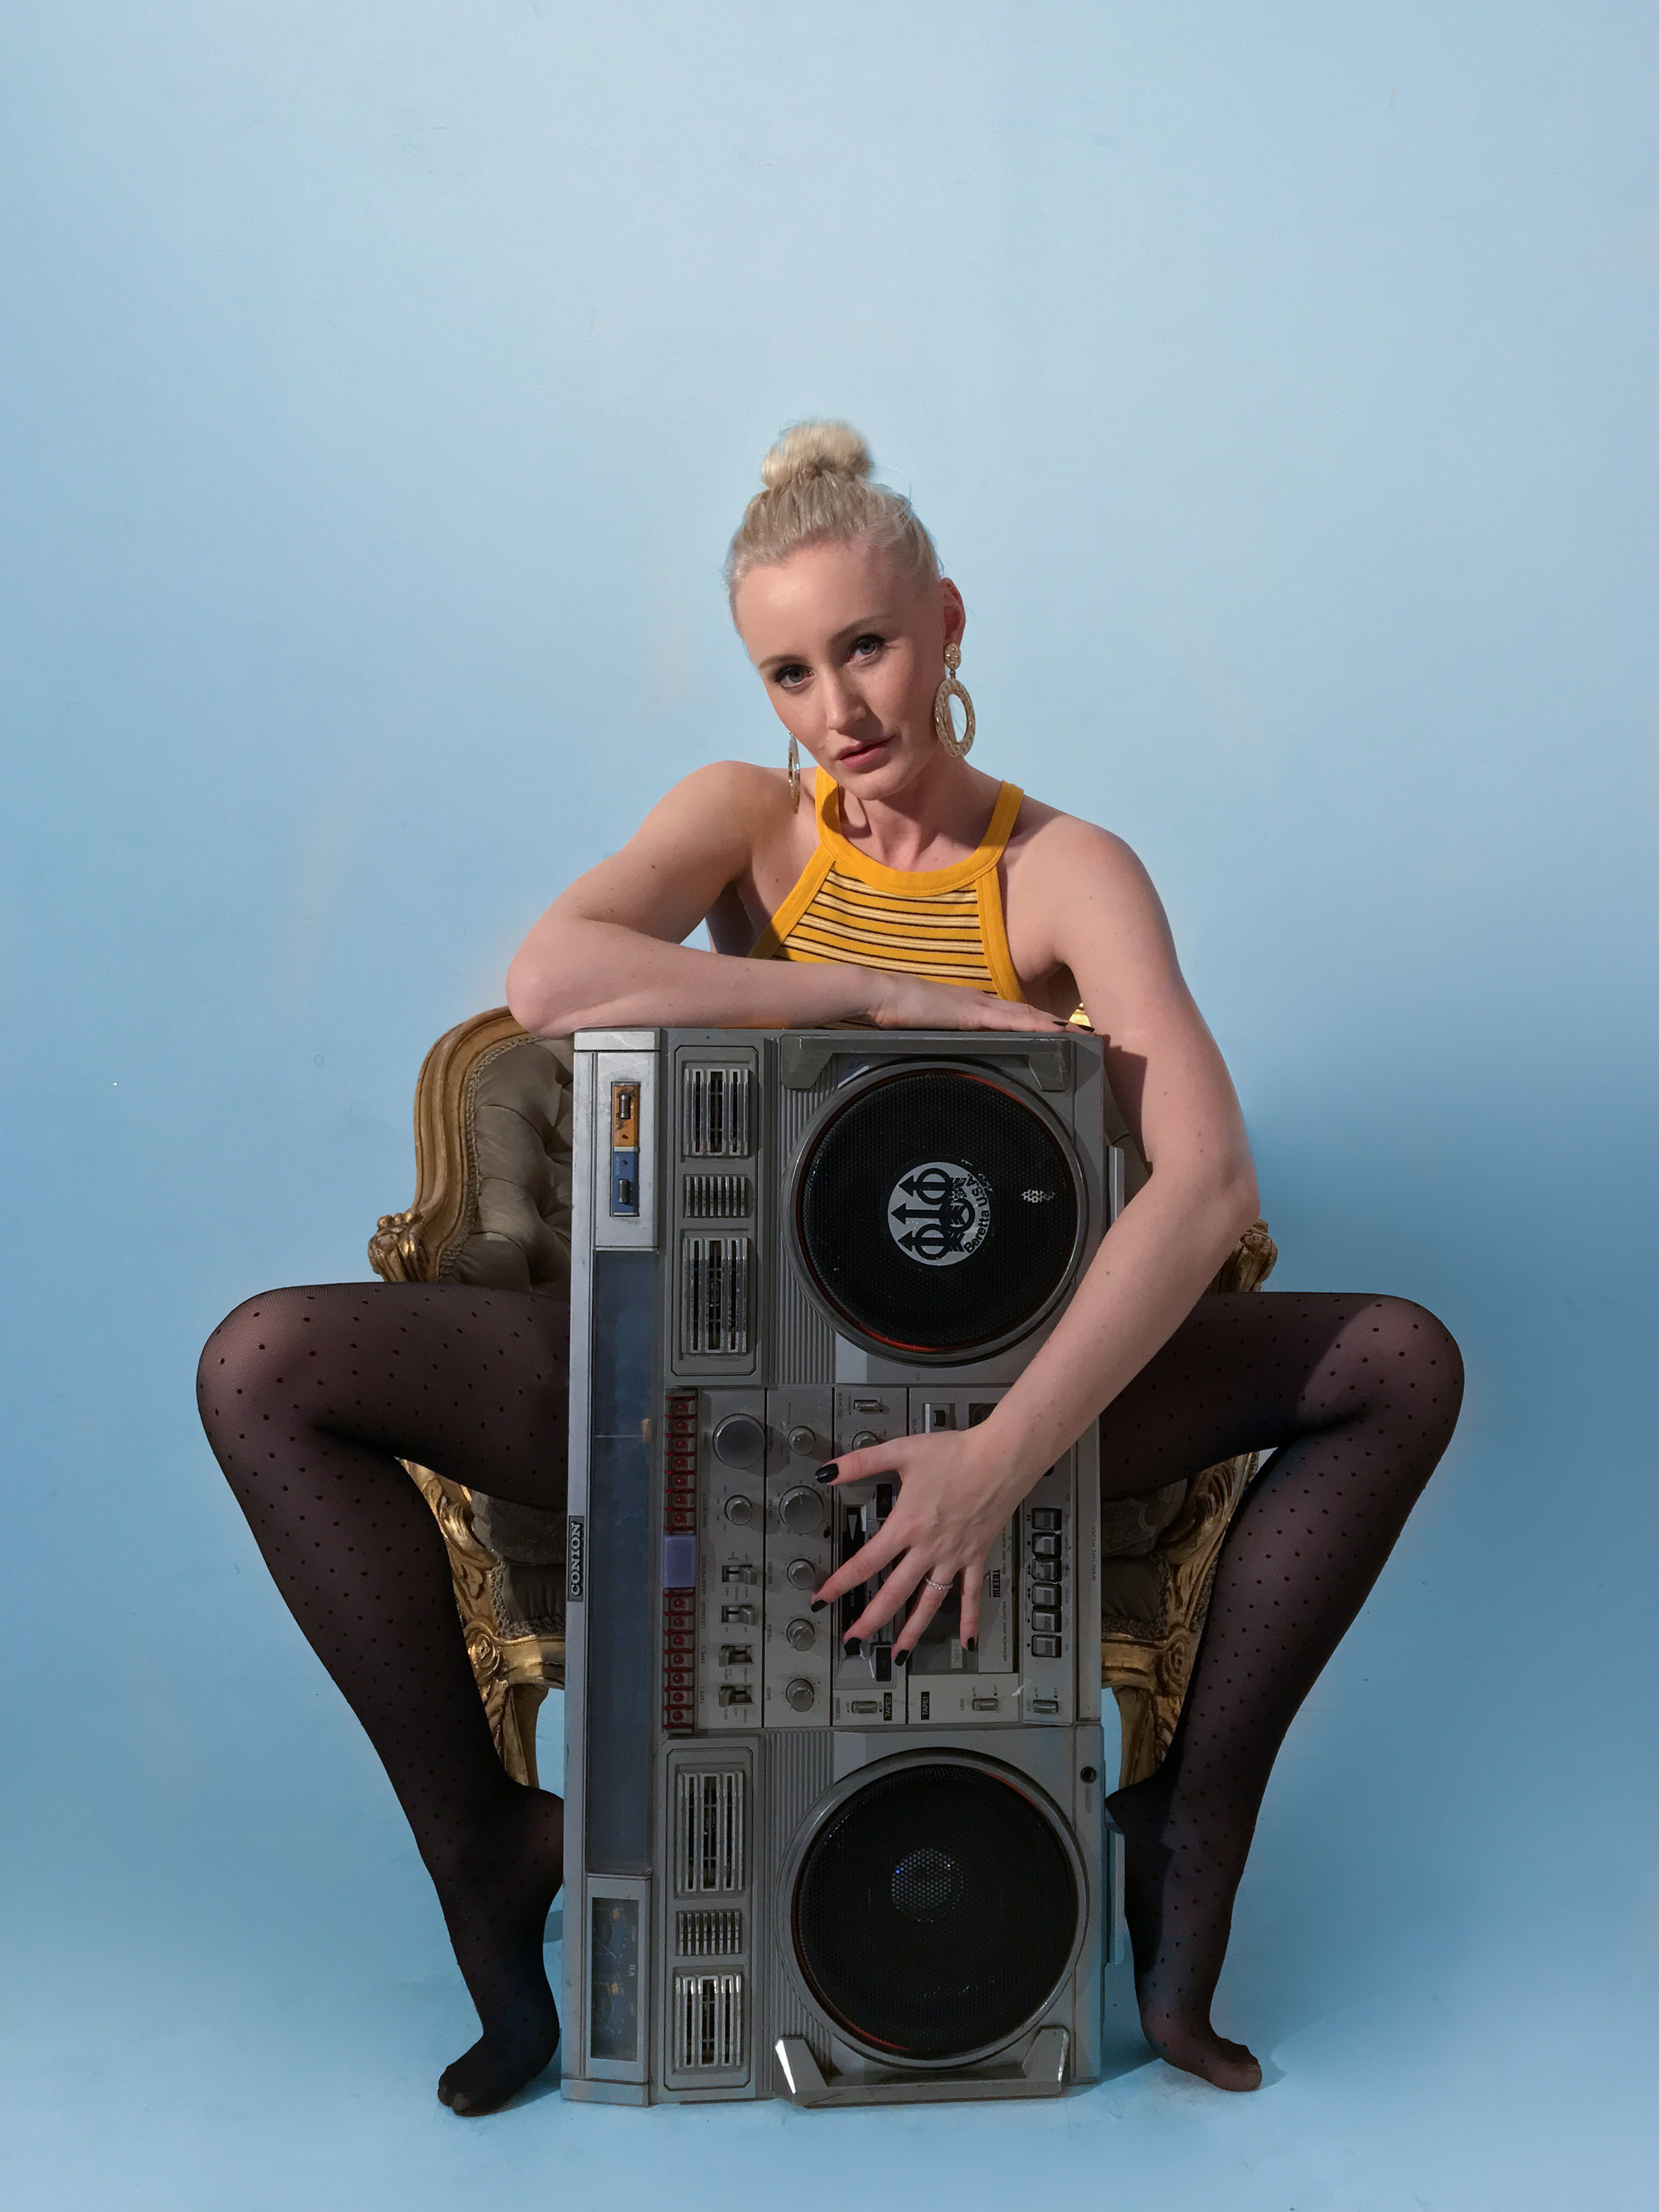 Boombox5-8fixedtights.jpg